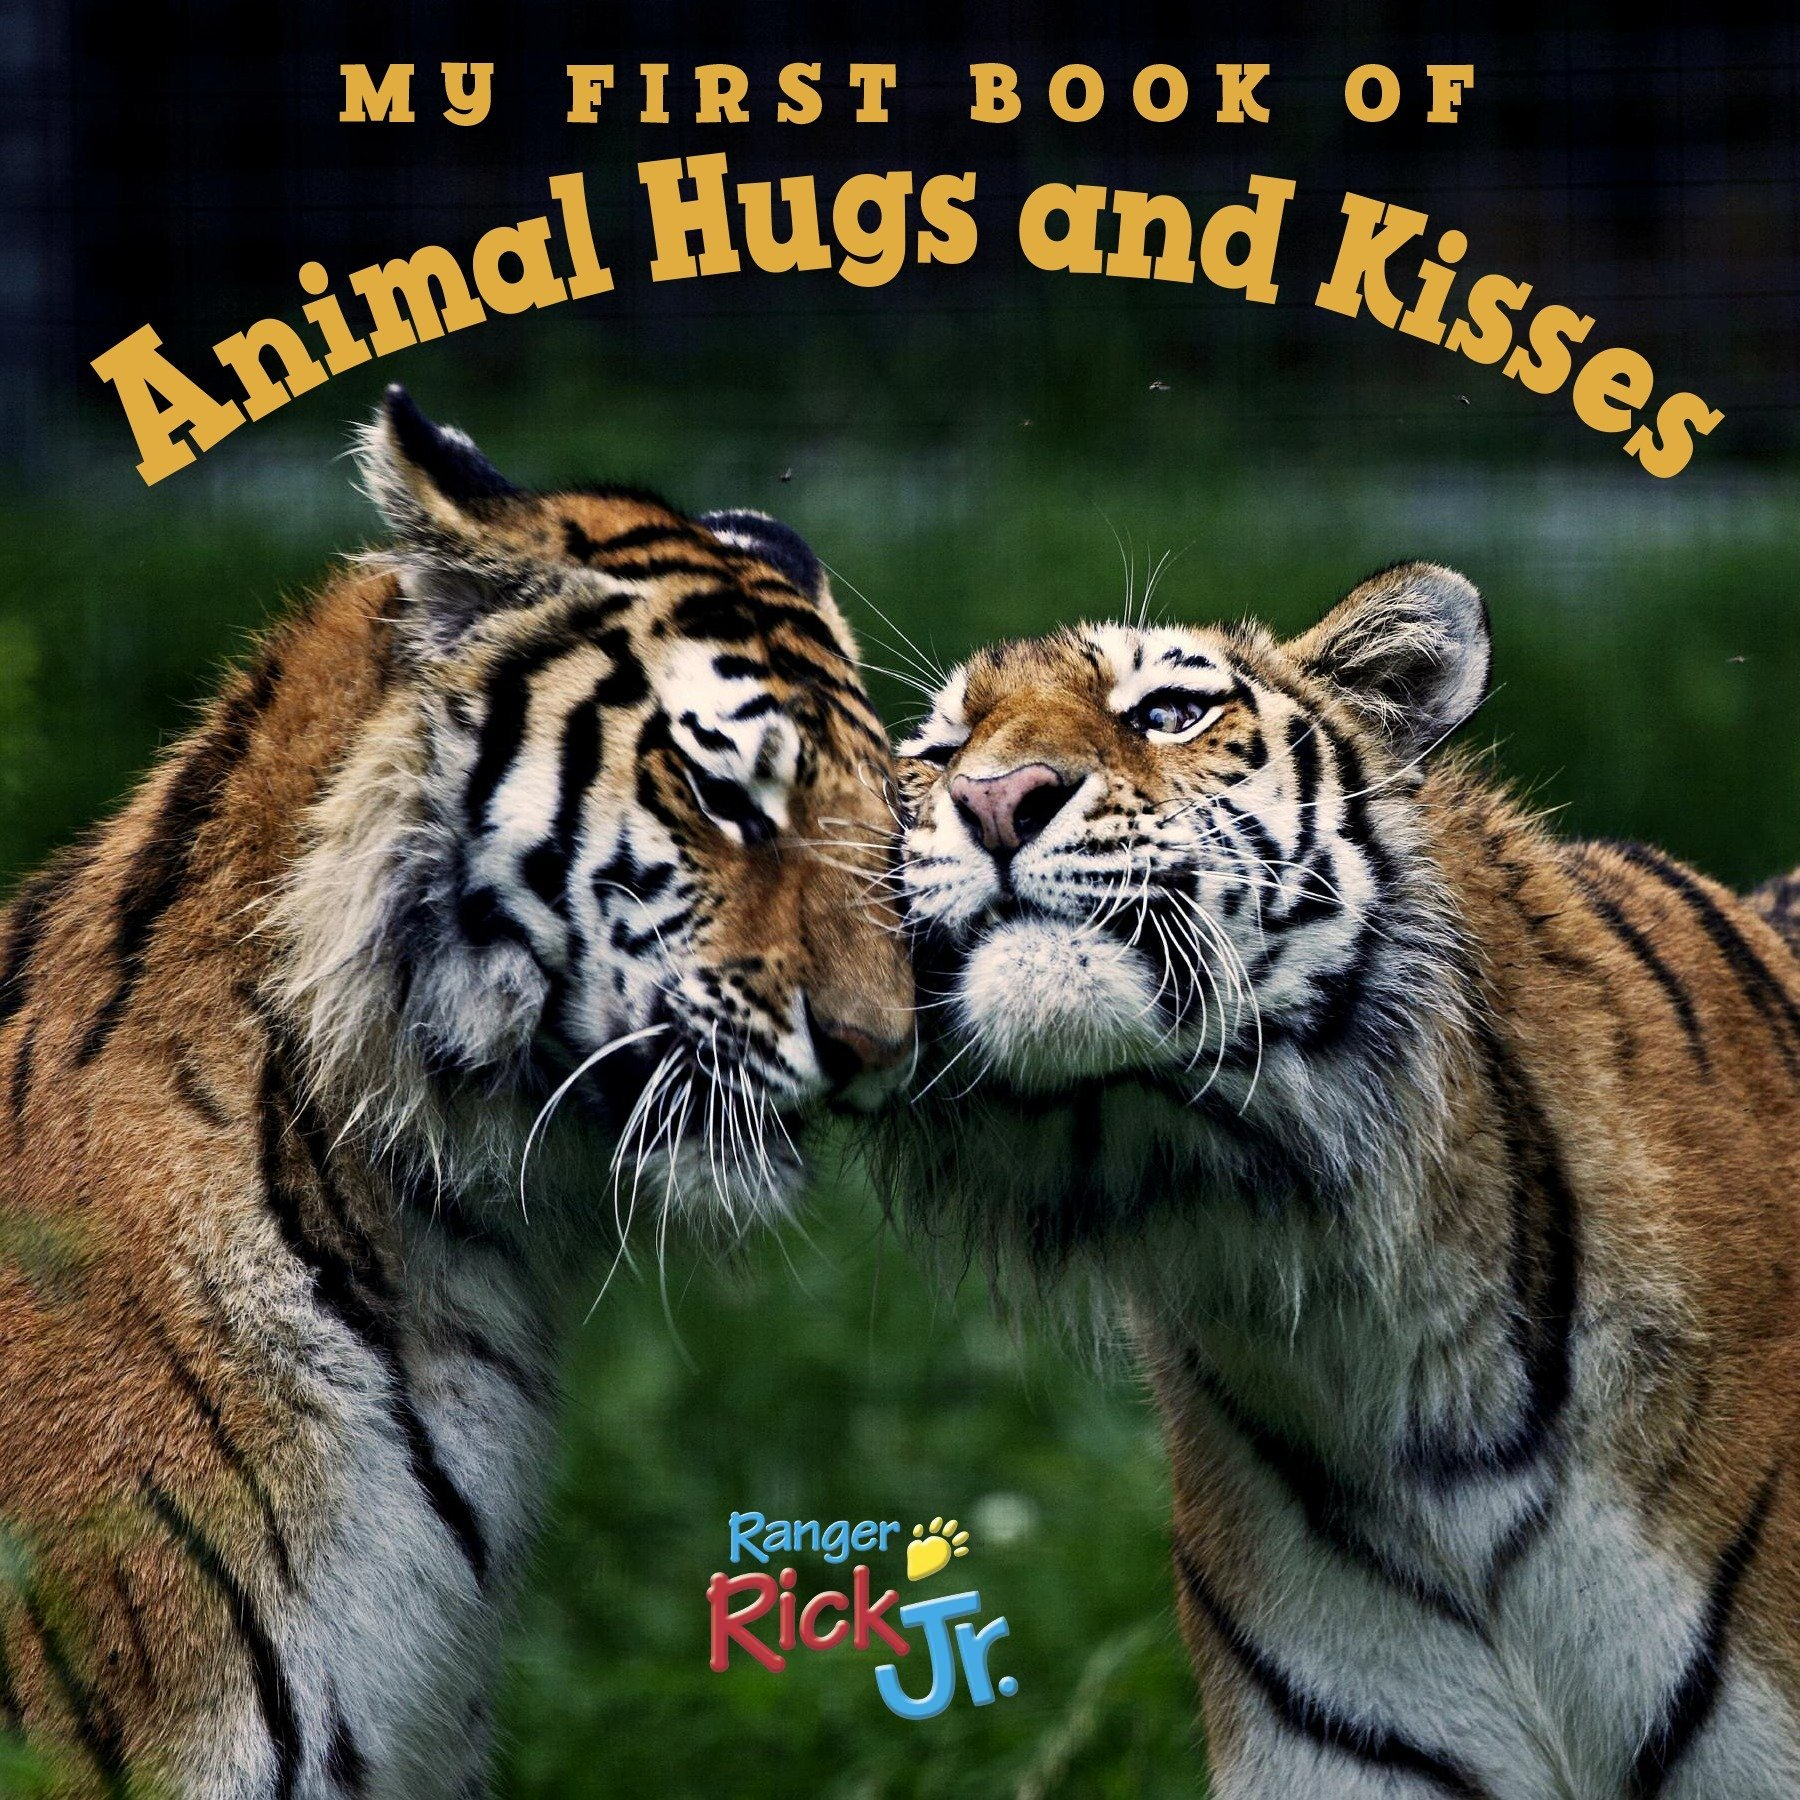 My First Book of Animal Hugs and Kisses (National Wildlife Federation) ebook